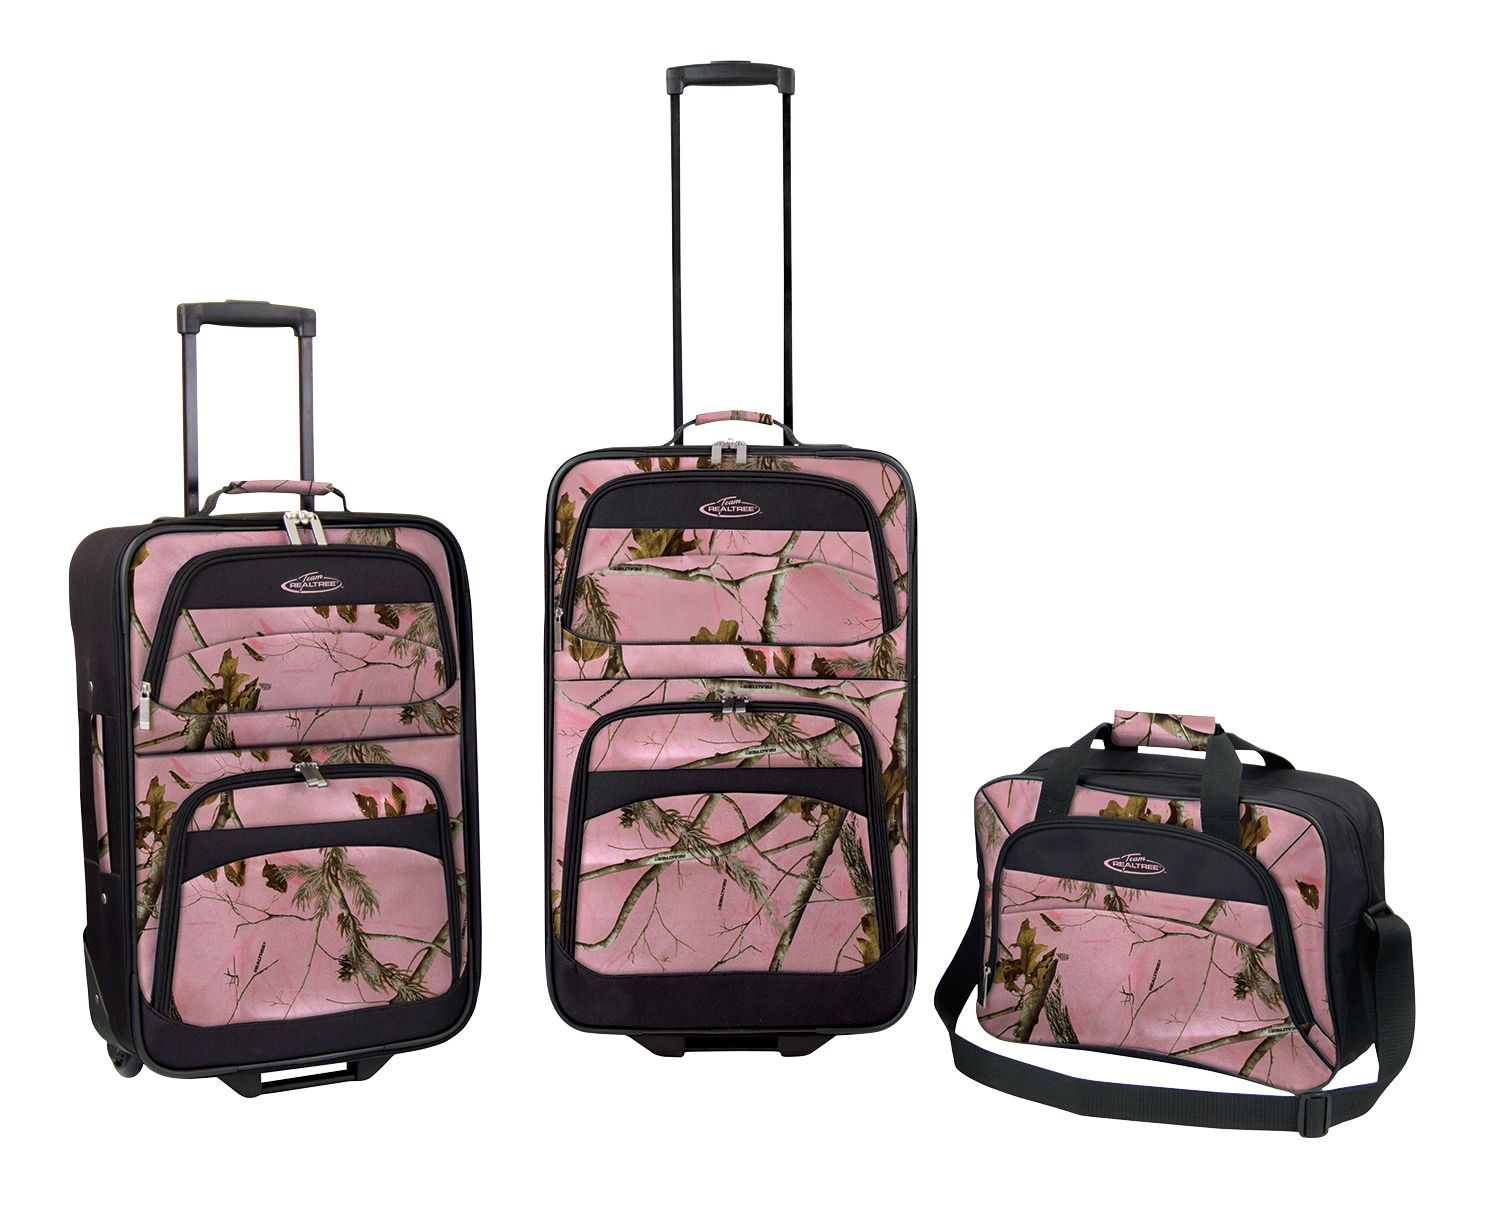 881118c6753 Team Realtree Pink Camo 3-Piece Luggage Set - For the Home - Luggage    Suitcases - Luggage Sets